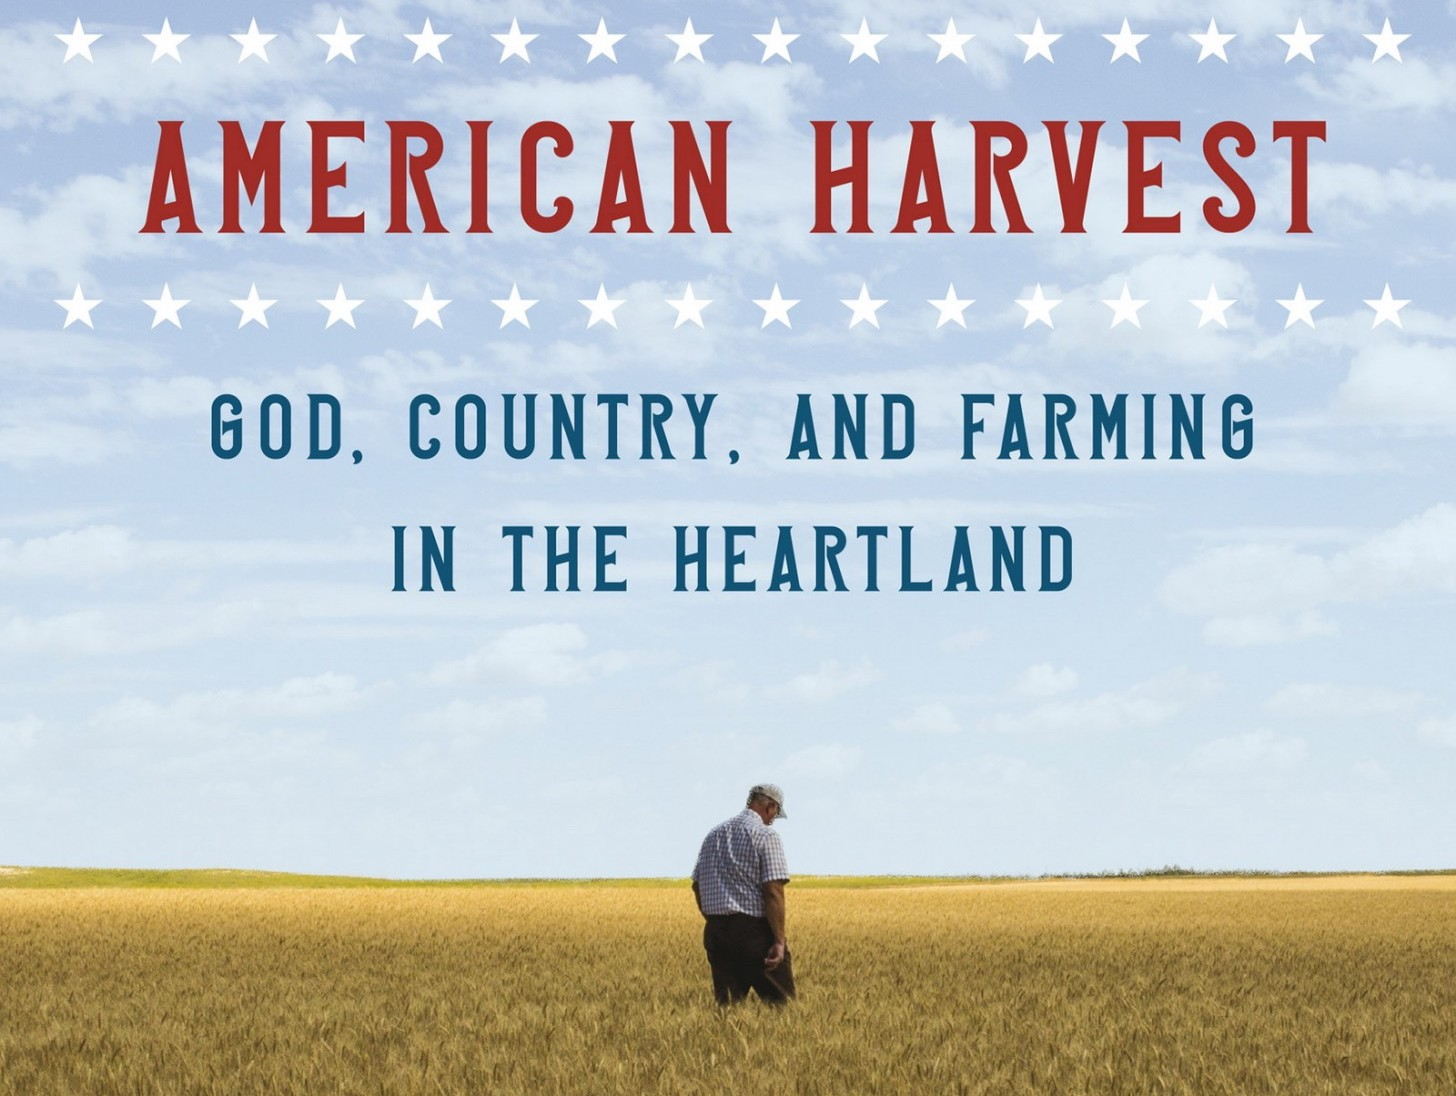 Cover photo from American Harvest